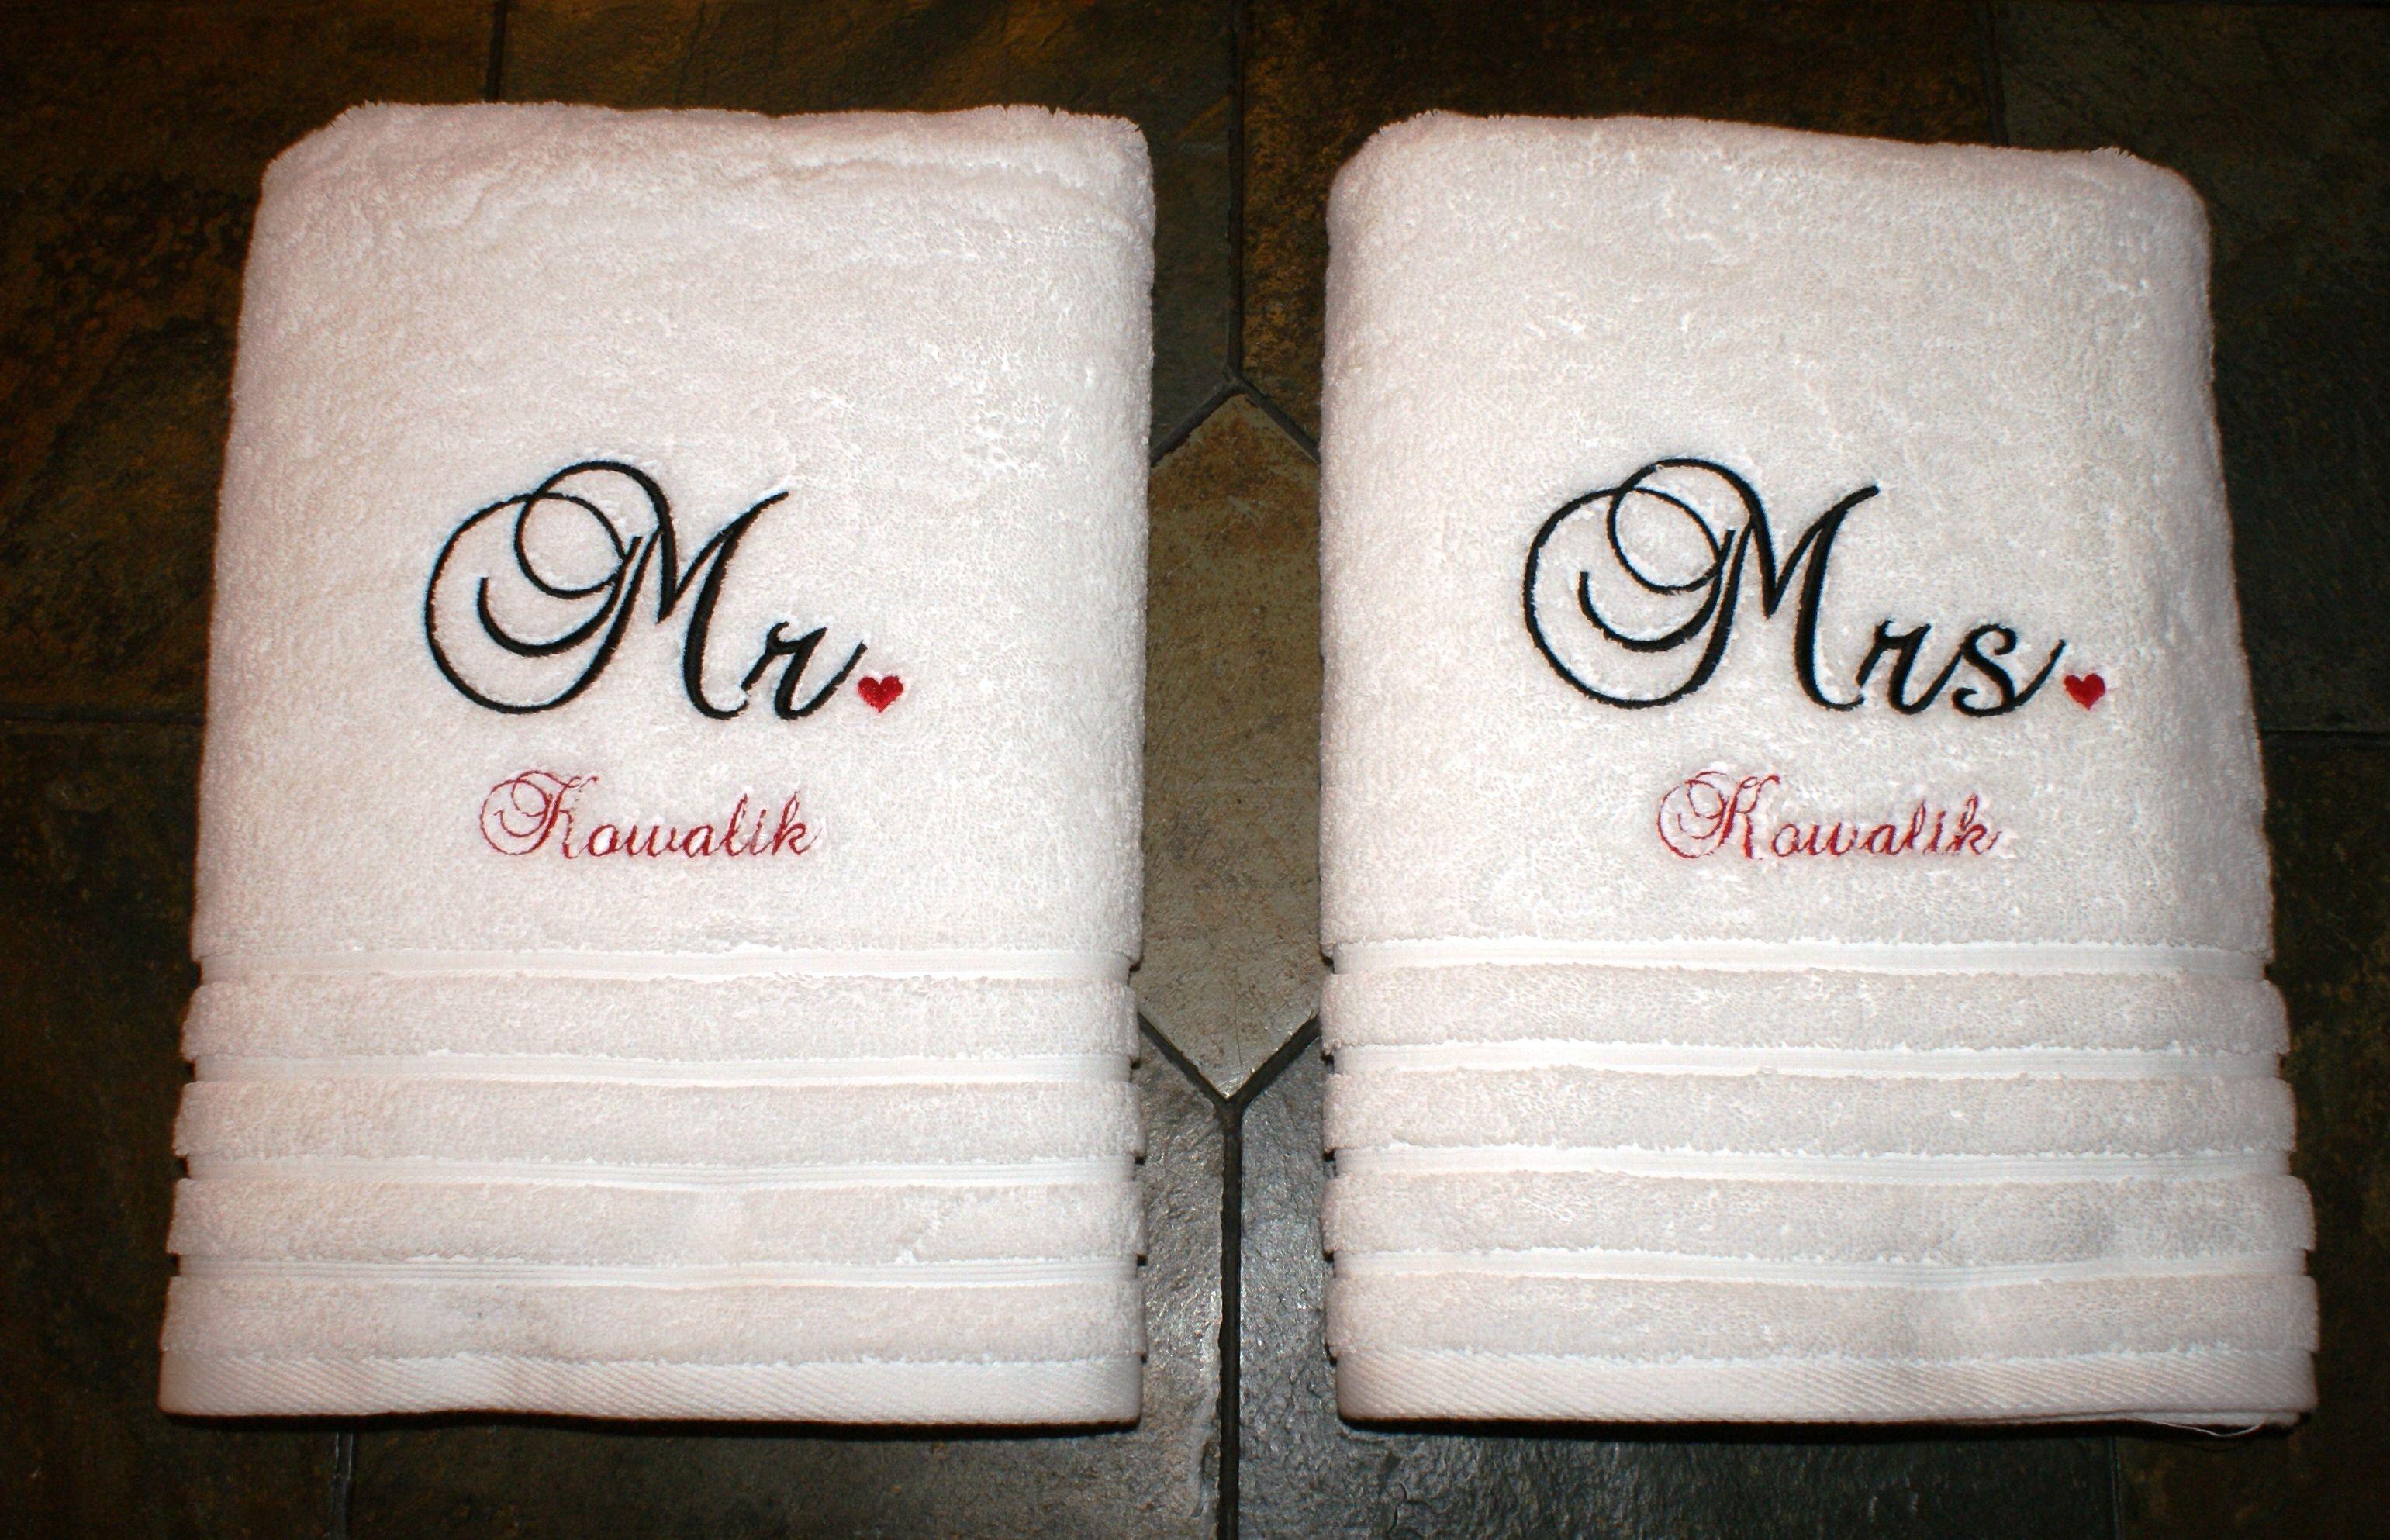 Bath Towels I Embroidered For Wedding Gift Embroidered Towels Embroidered Gifts Monogram Towels